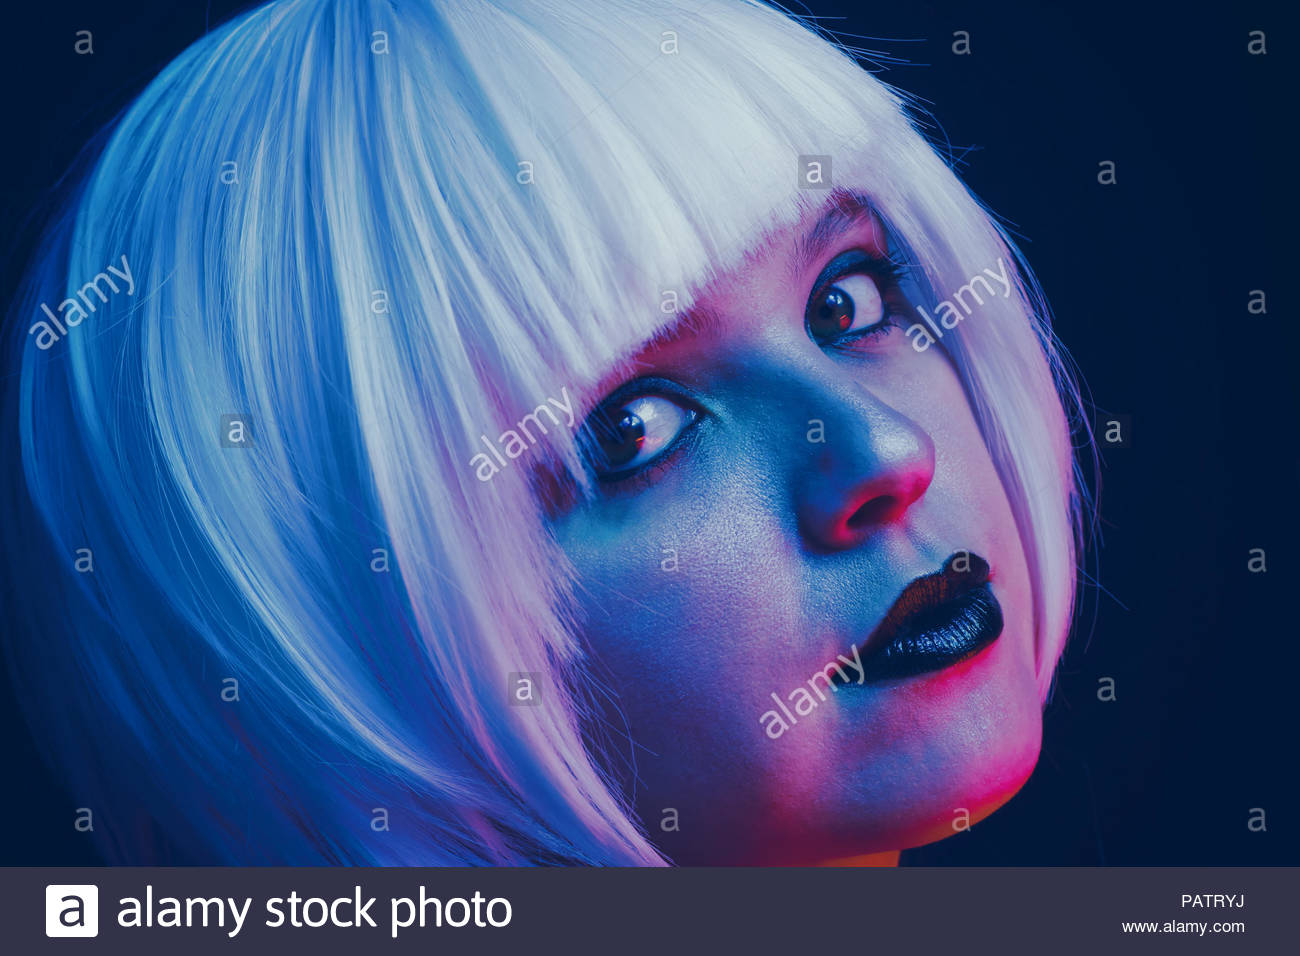 Artistic portrait of a young woman illuminated by color lights - Stock Image